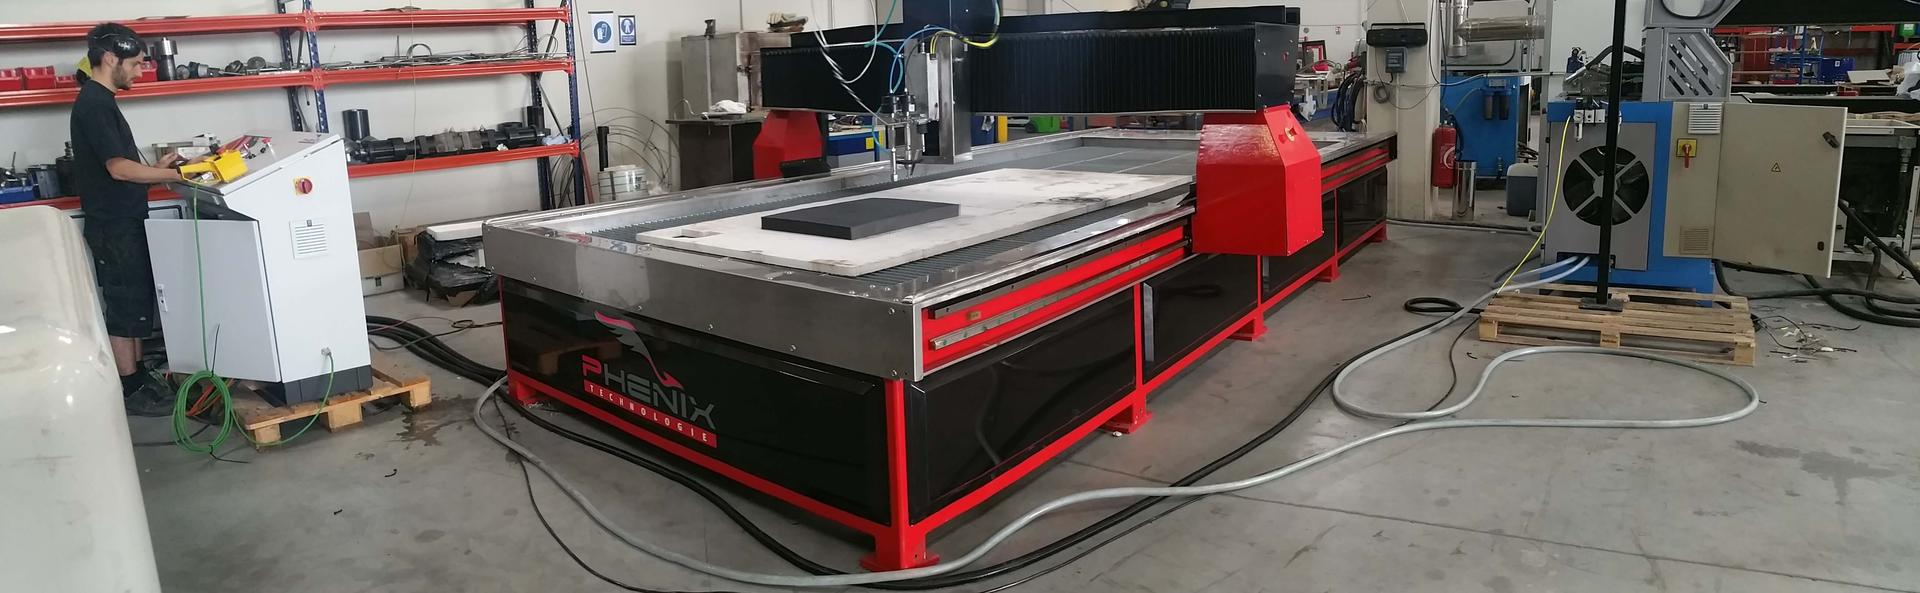 MDX8 - MD-X waterjet cutting machine